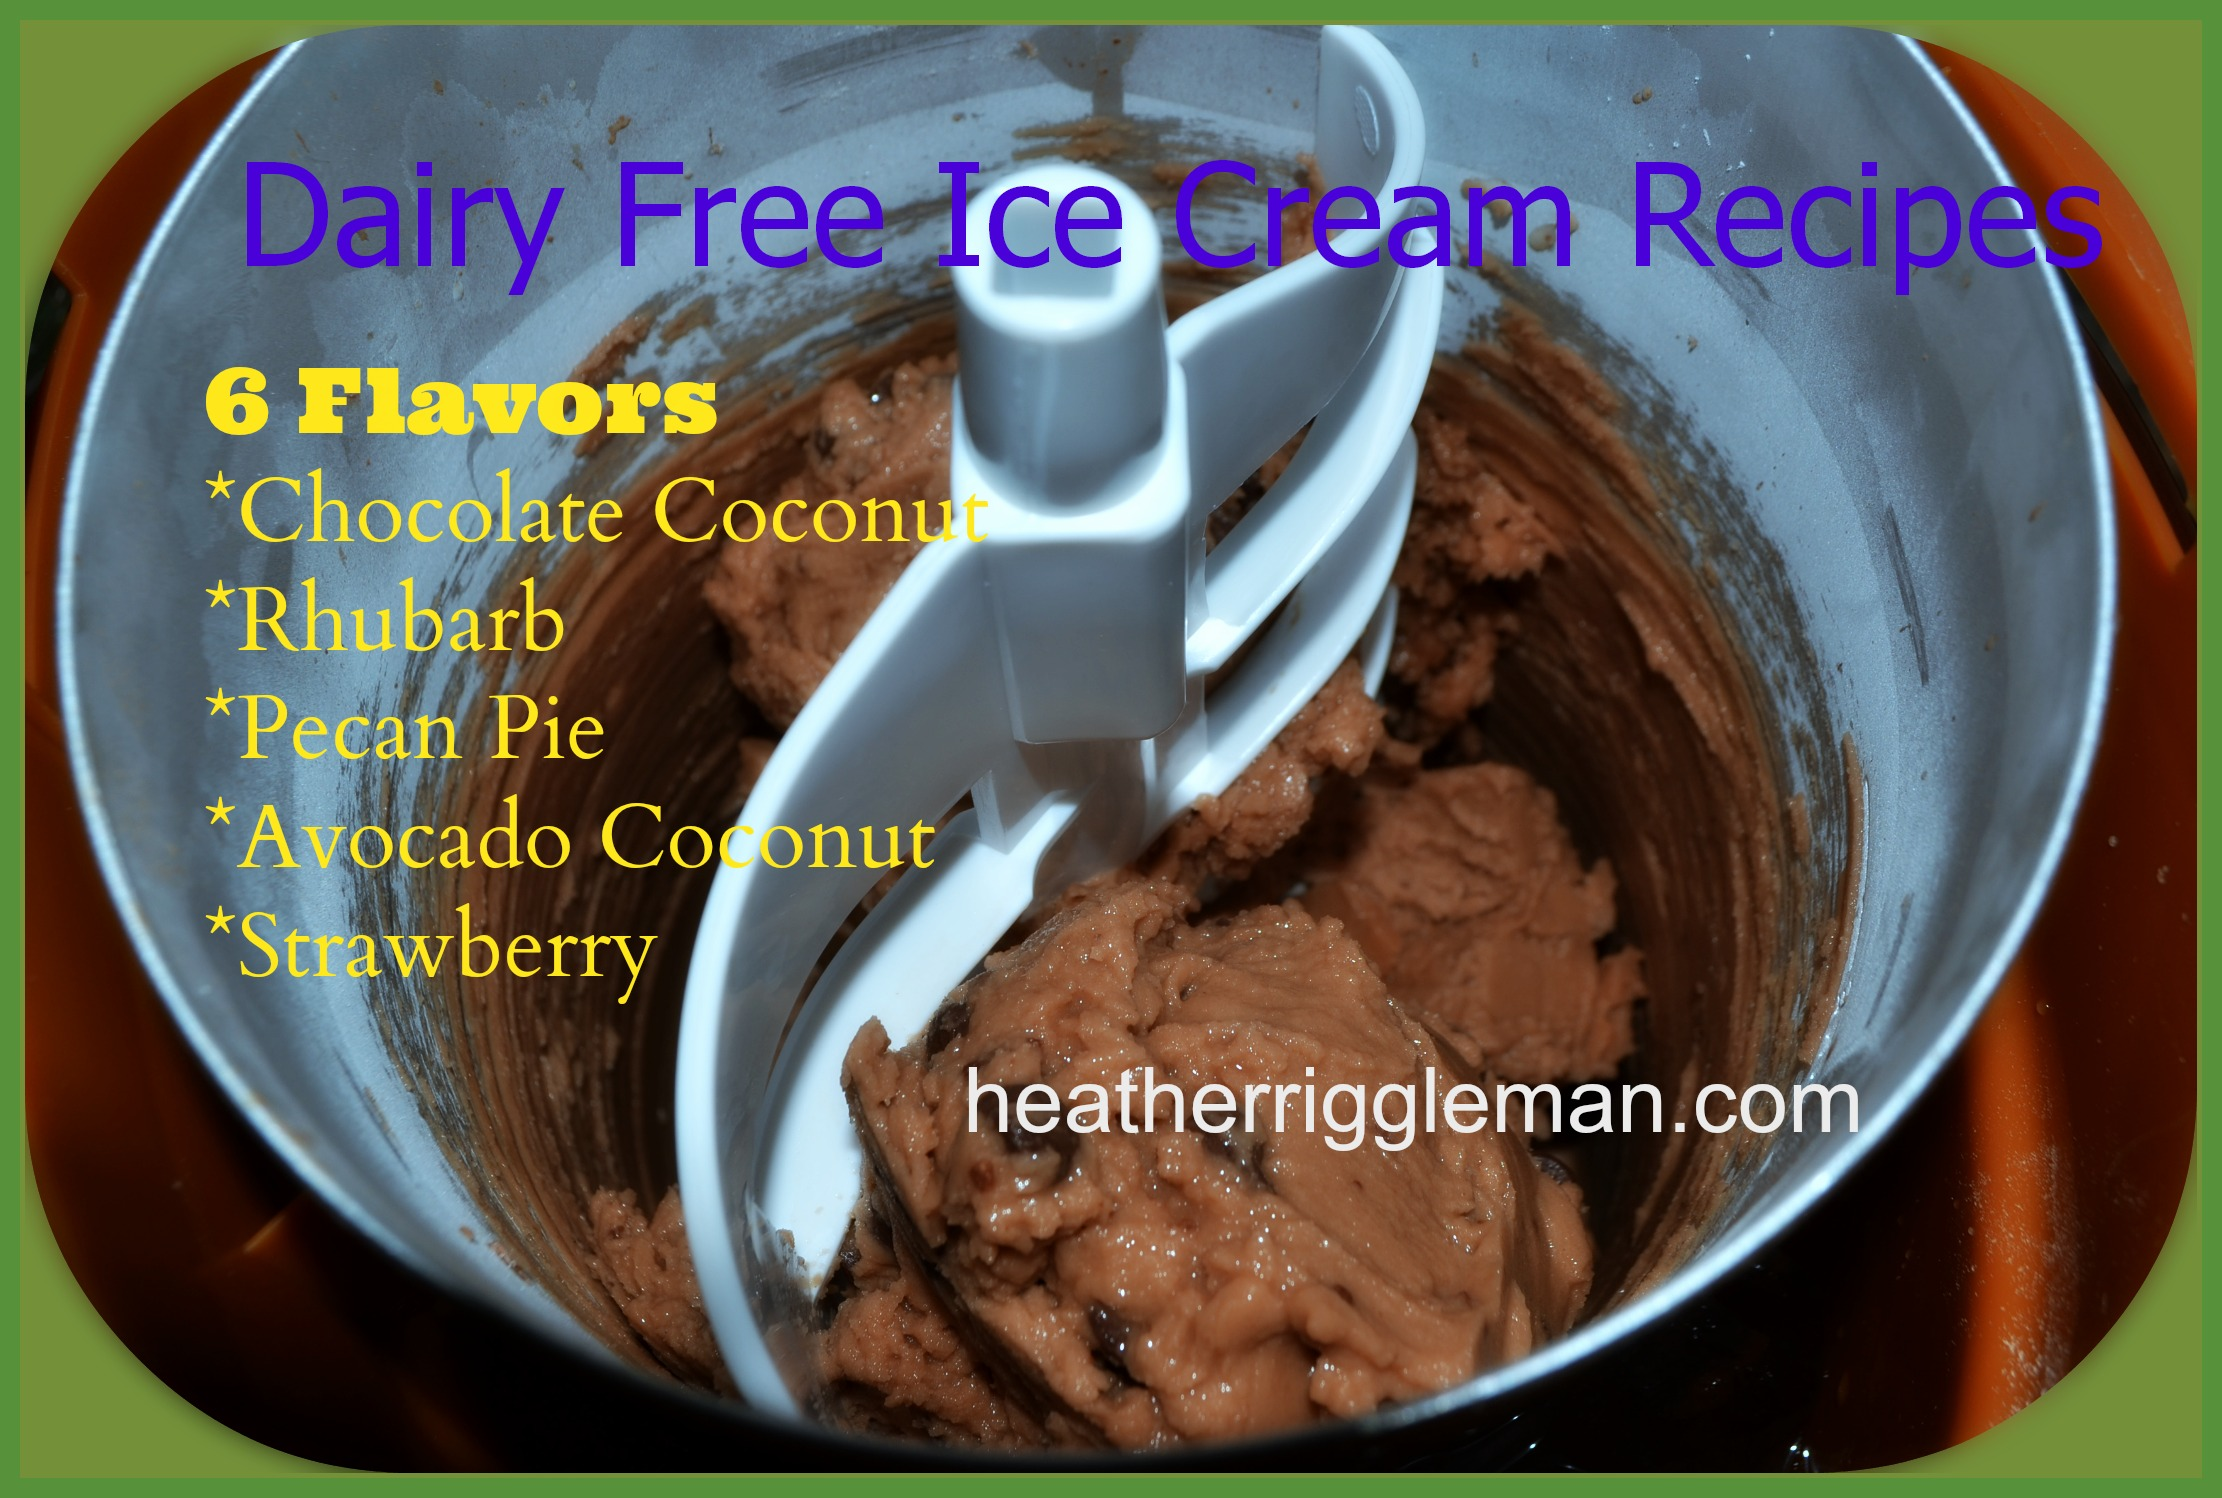 Chocolate Coconut Ice Cream & More